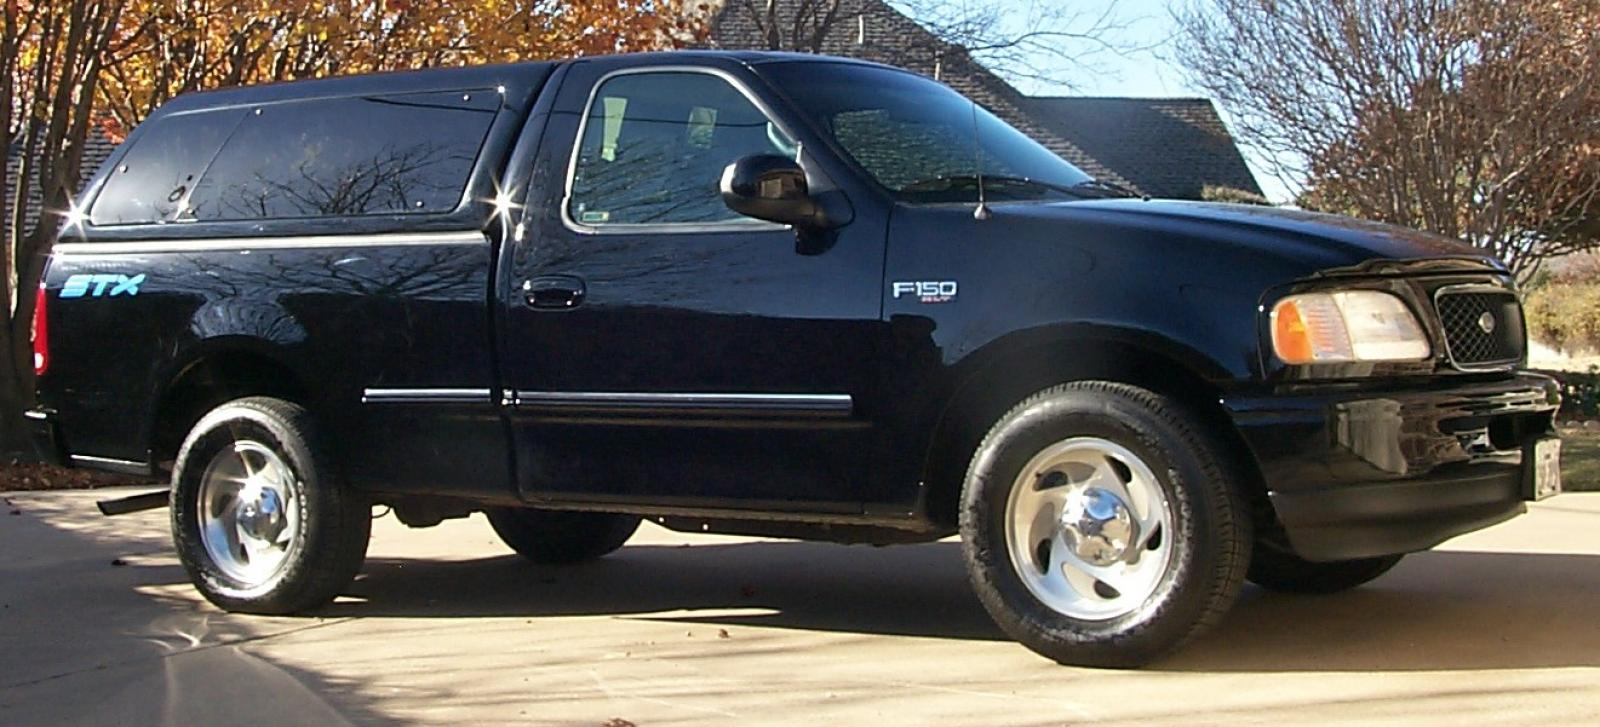 1998 Ford F-150 - Information And Photos